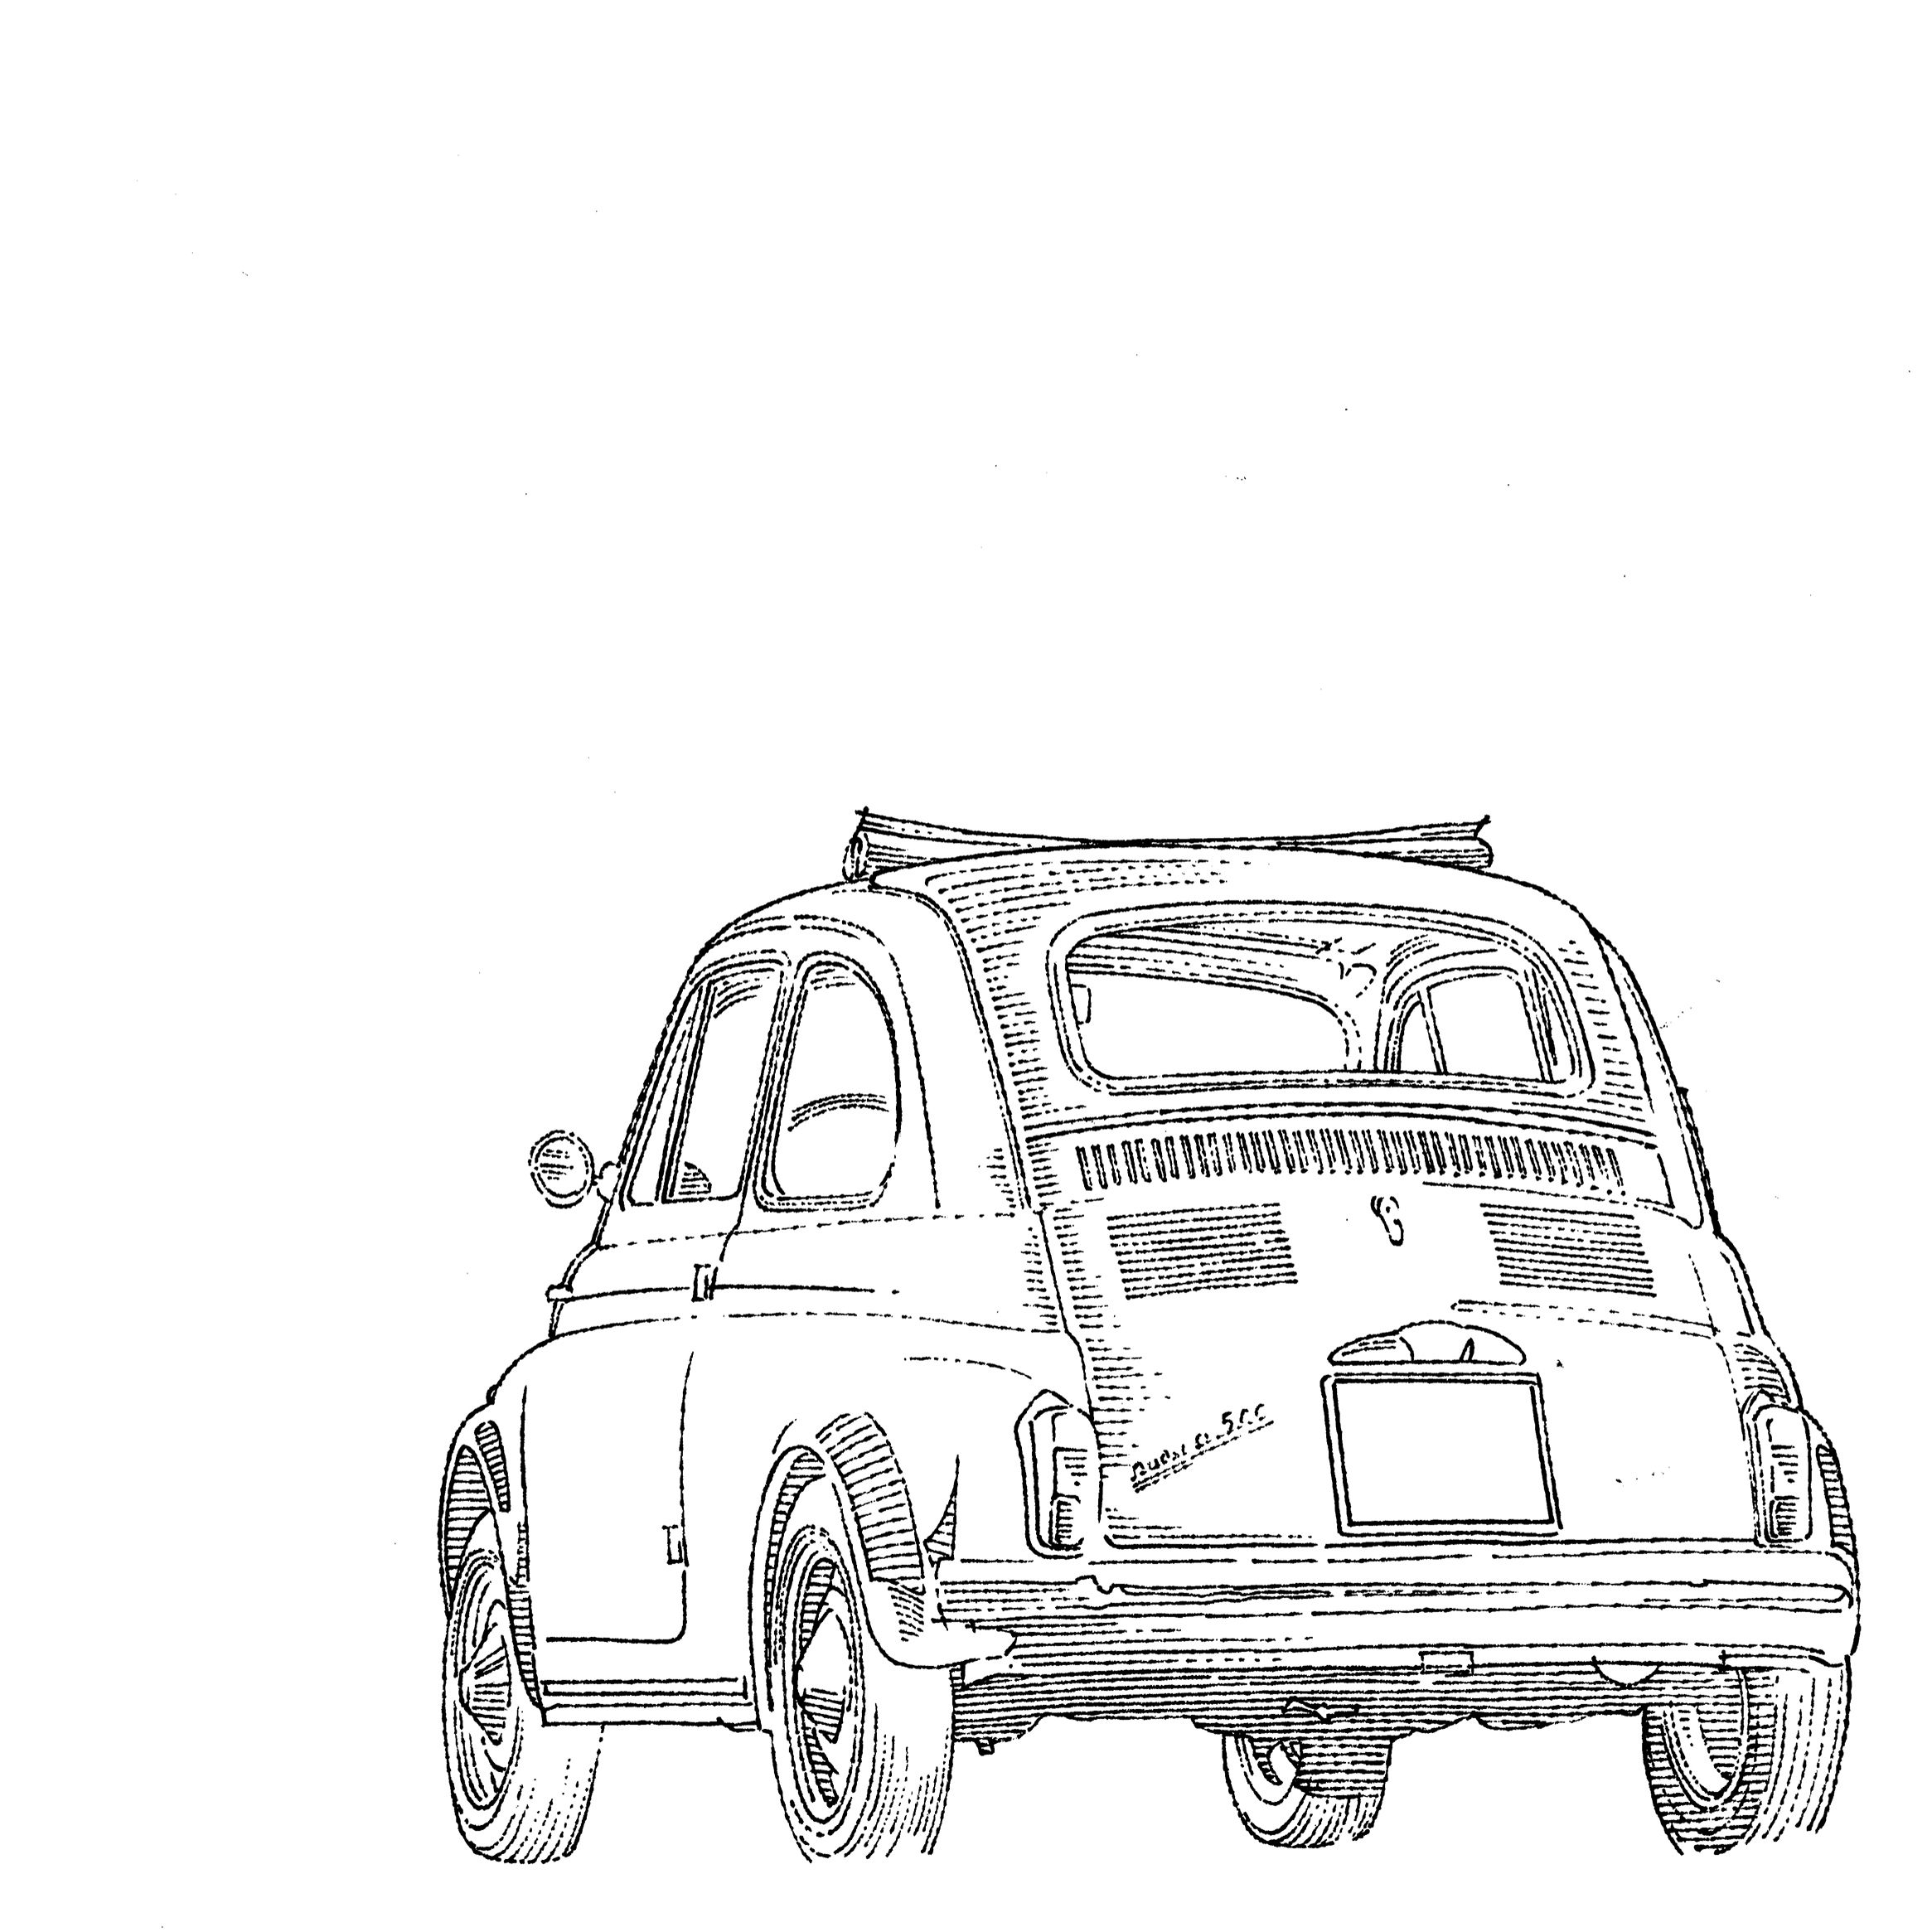 FIAT 500 NUOVA #line #art #character #design #model #